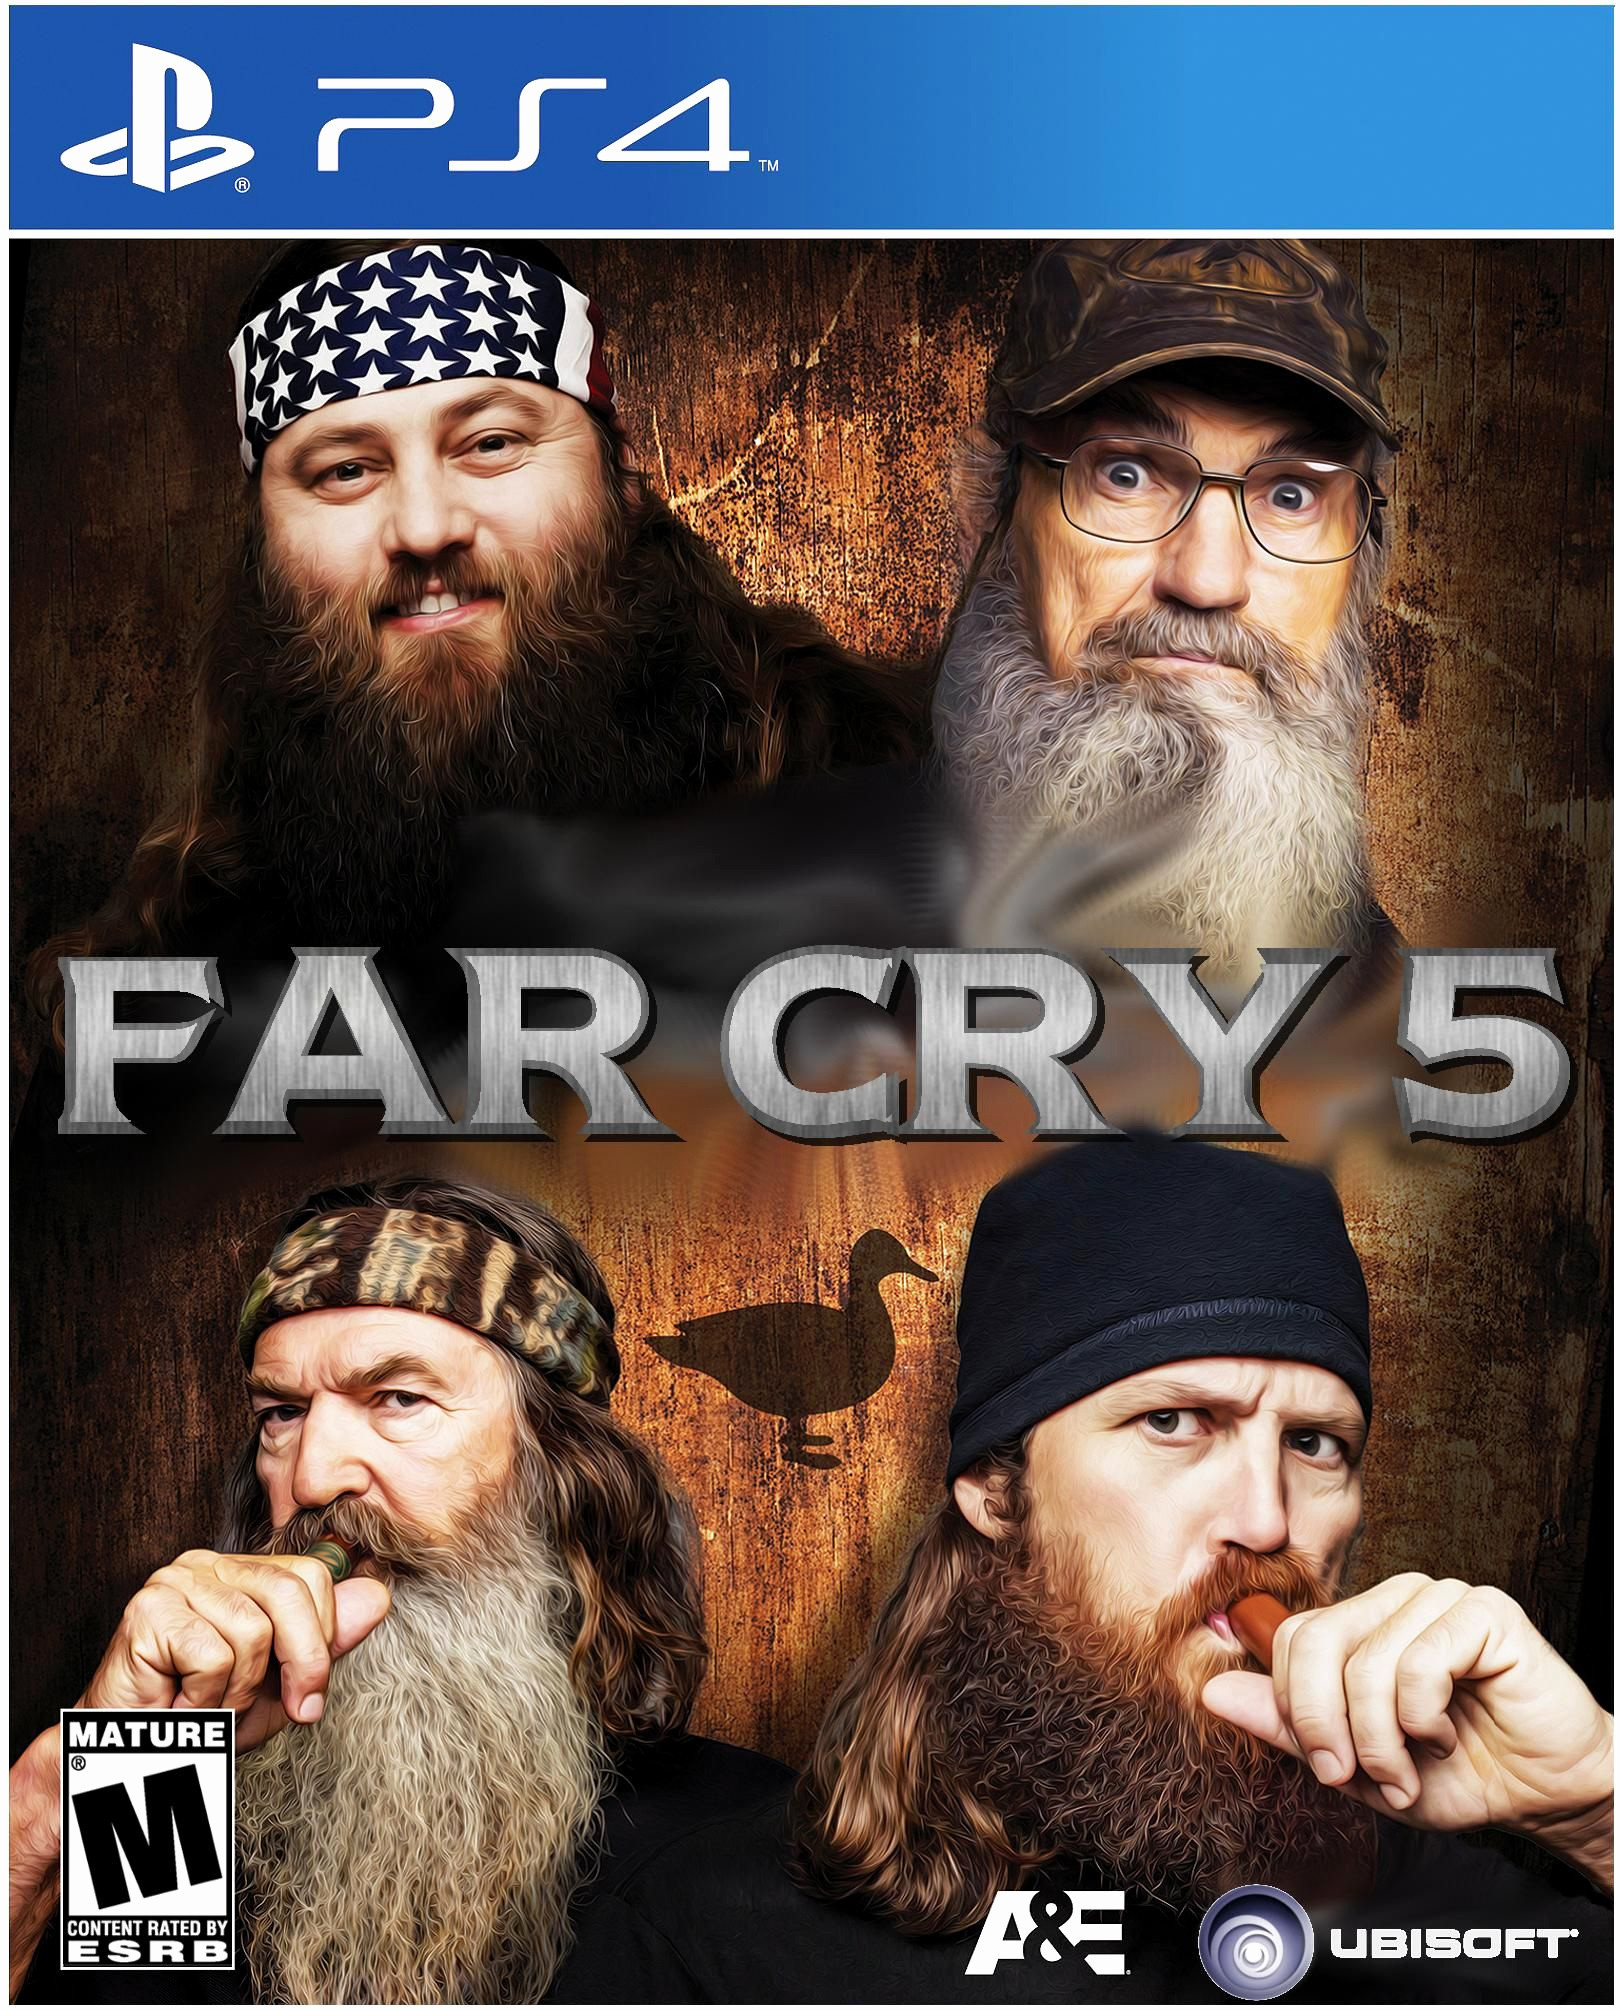 Res: 1620x2010, Duck Dynasty Wallpaper Lovely Leaked Far Cry 5 Box Art Latestgames Pinterest